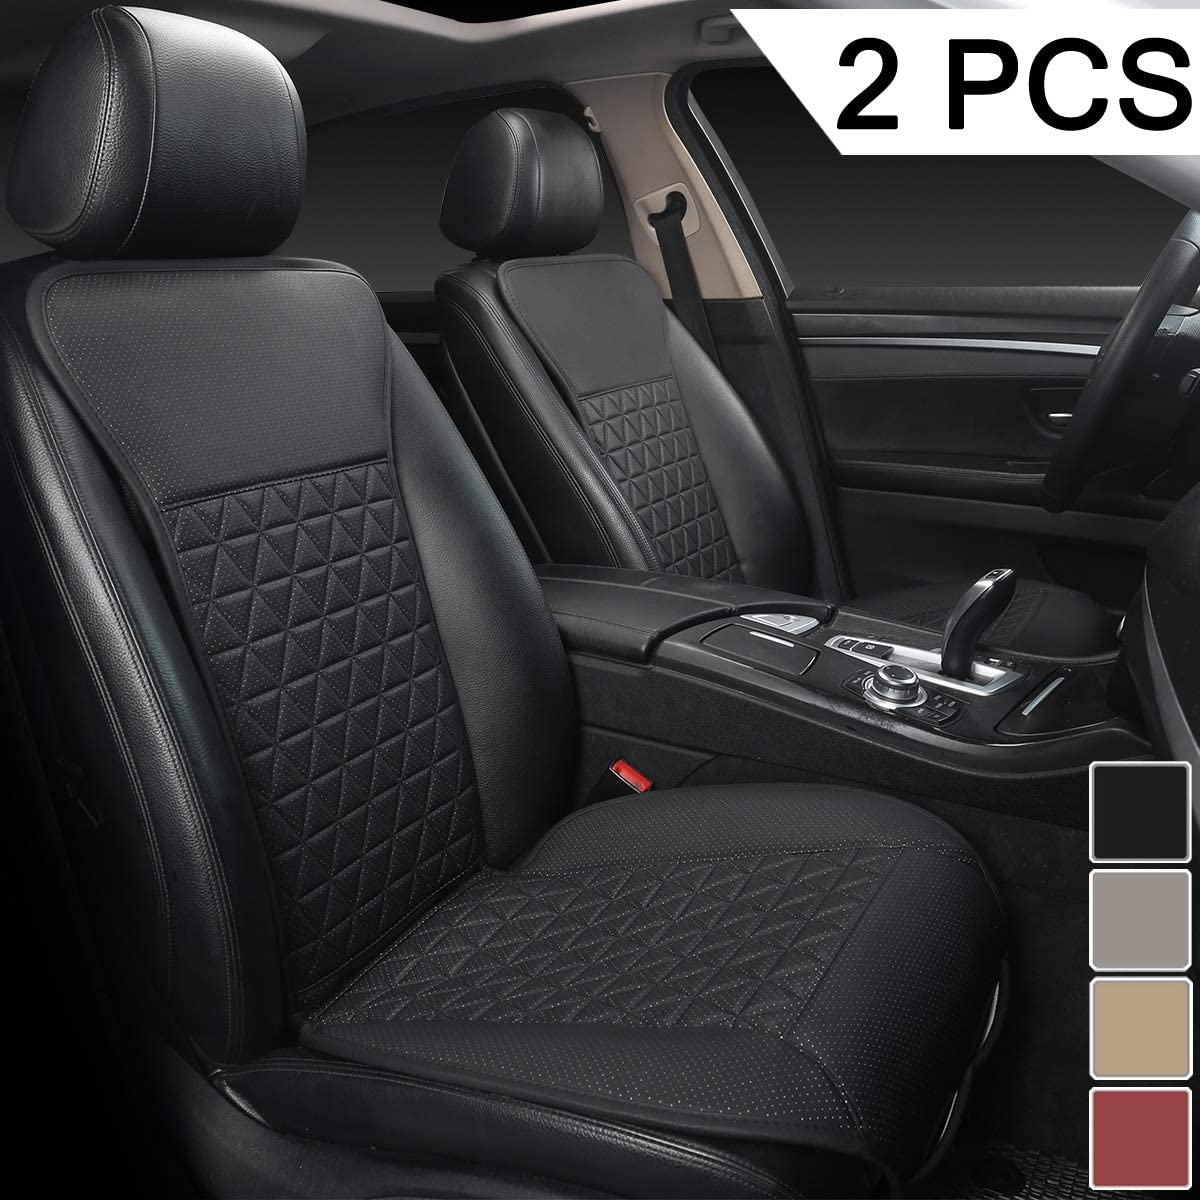 Black Panther 1 Pair Luxury PU Car Seat Covers Protectors for Front Seats, Triangle Pattern, Compatible with 95% Cars (Sedan/SUV/Truck/Van/MPV) - Black